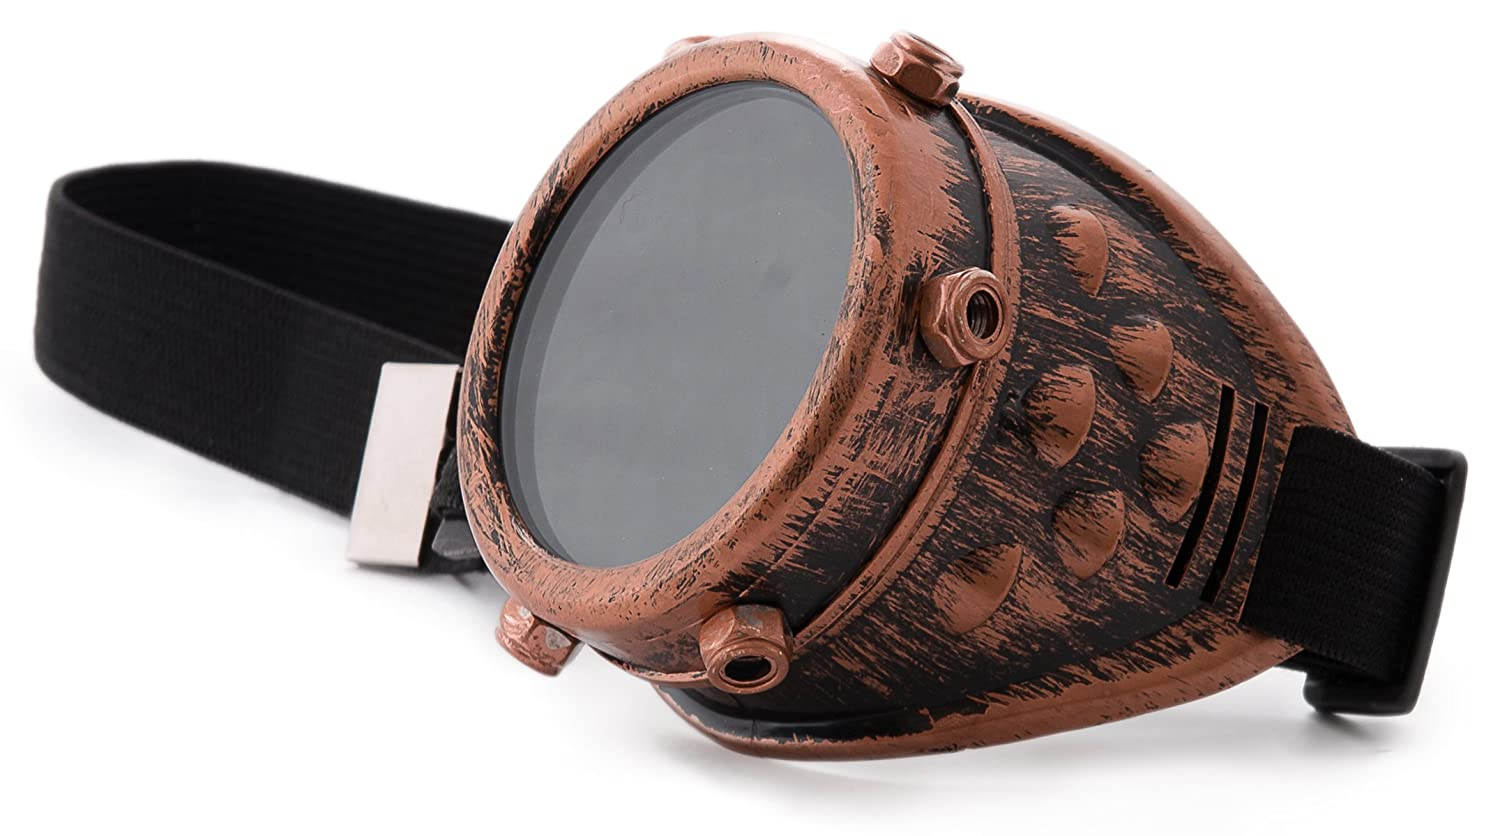 4sold (TM) Steampunk Black Cyber Goggles Rave Goth Vintage Victorian like Sunglasses 4sold ltd b-1